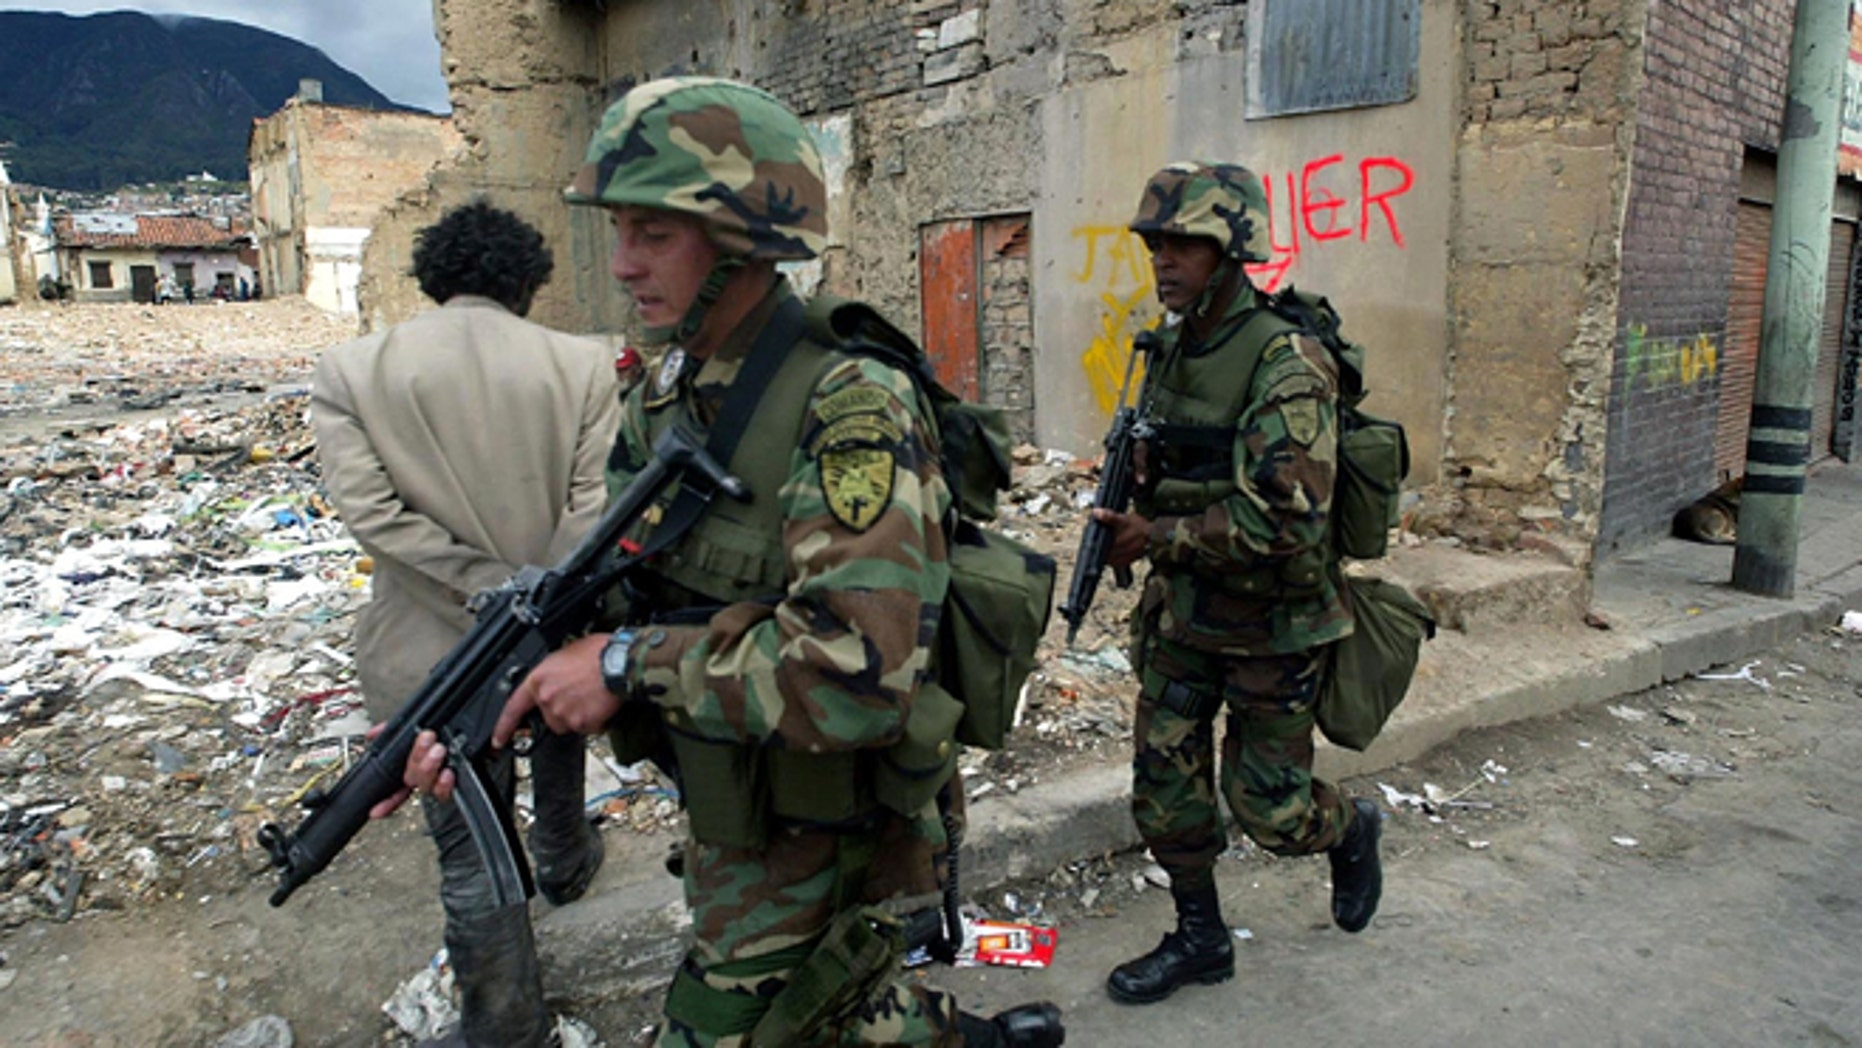 BOGOTA, COL- AUGUST 7:  Colombian soldiers patrol the area just blocks from parliament where suspected rebels targeted mortar rounds as Alvaro Uribe was sworn in as president August 7, 2002 in Bogota, Colombia.  Reports say at least14 people were killed and 69 wounded.  (Photo by Getty Images)